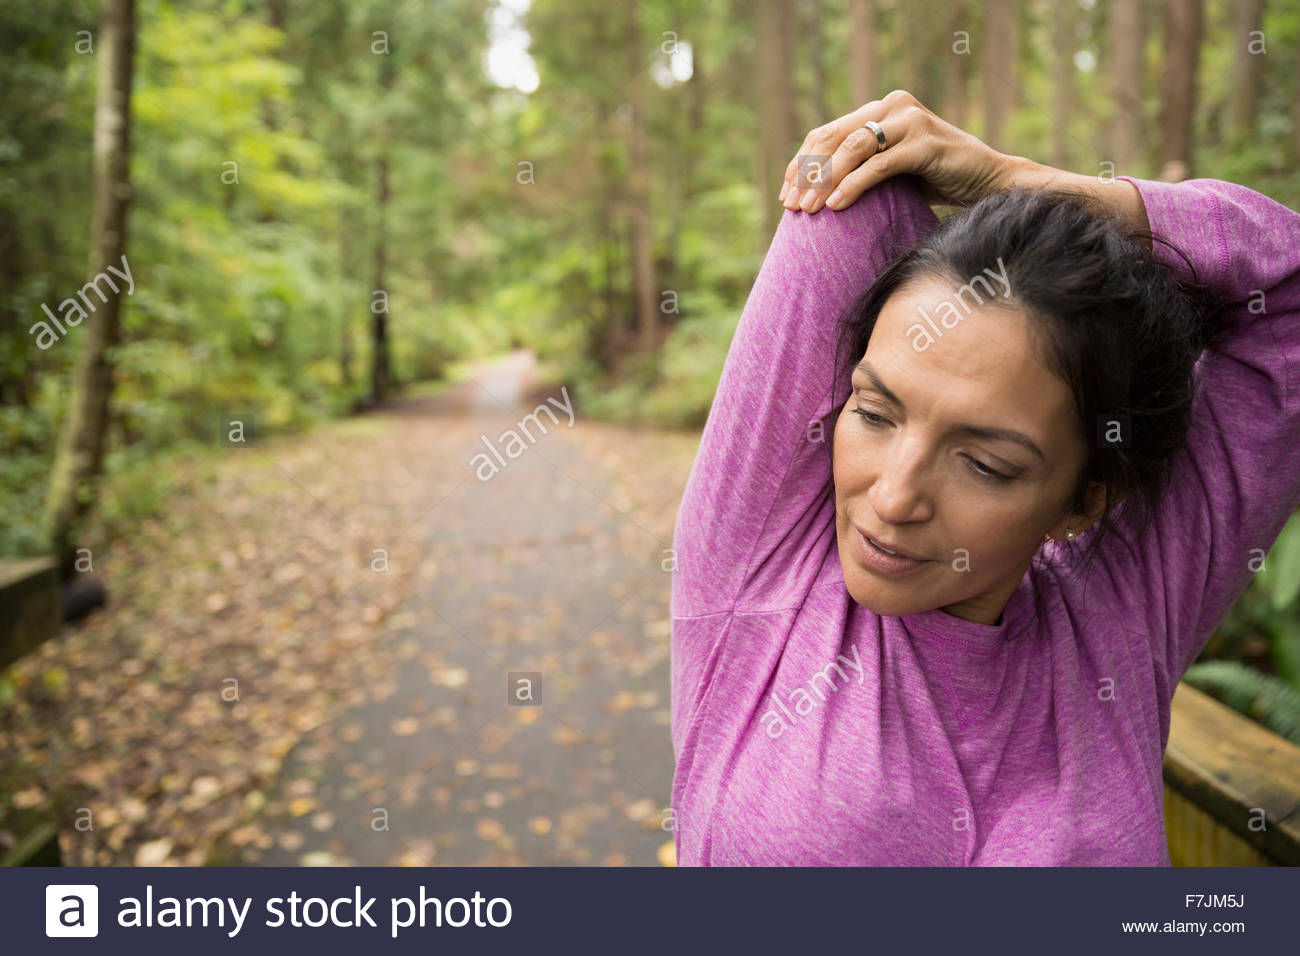 Woman stretching arms preparing for run in woods - Stock Image